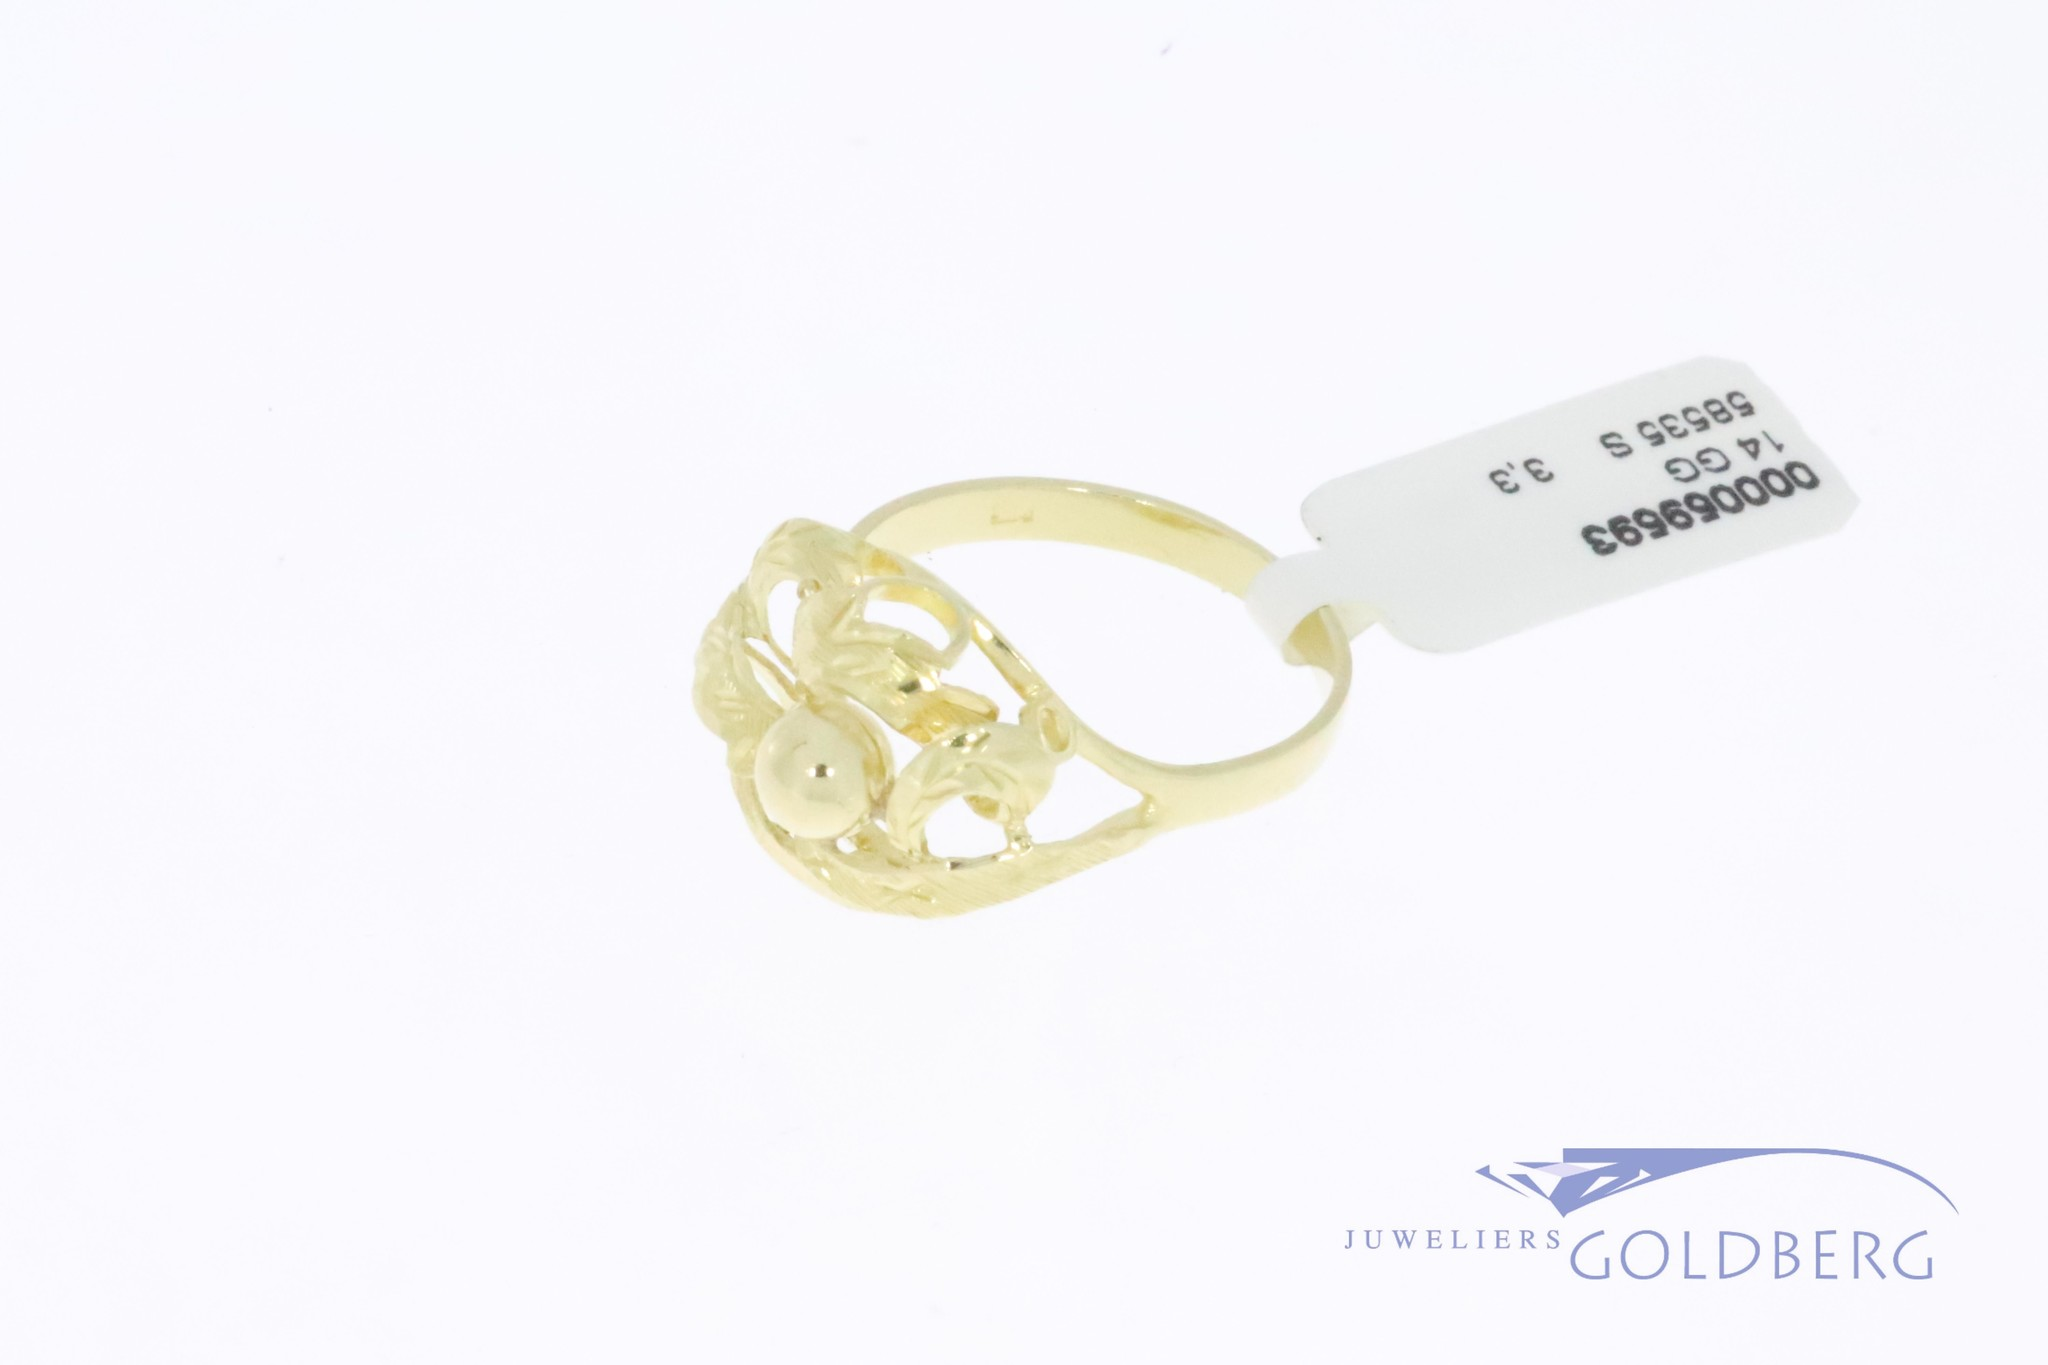 14k gold organically shaped vintage design ring